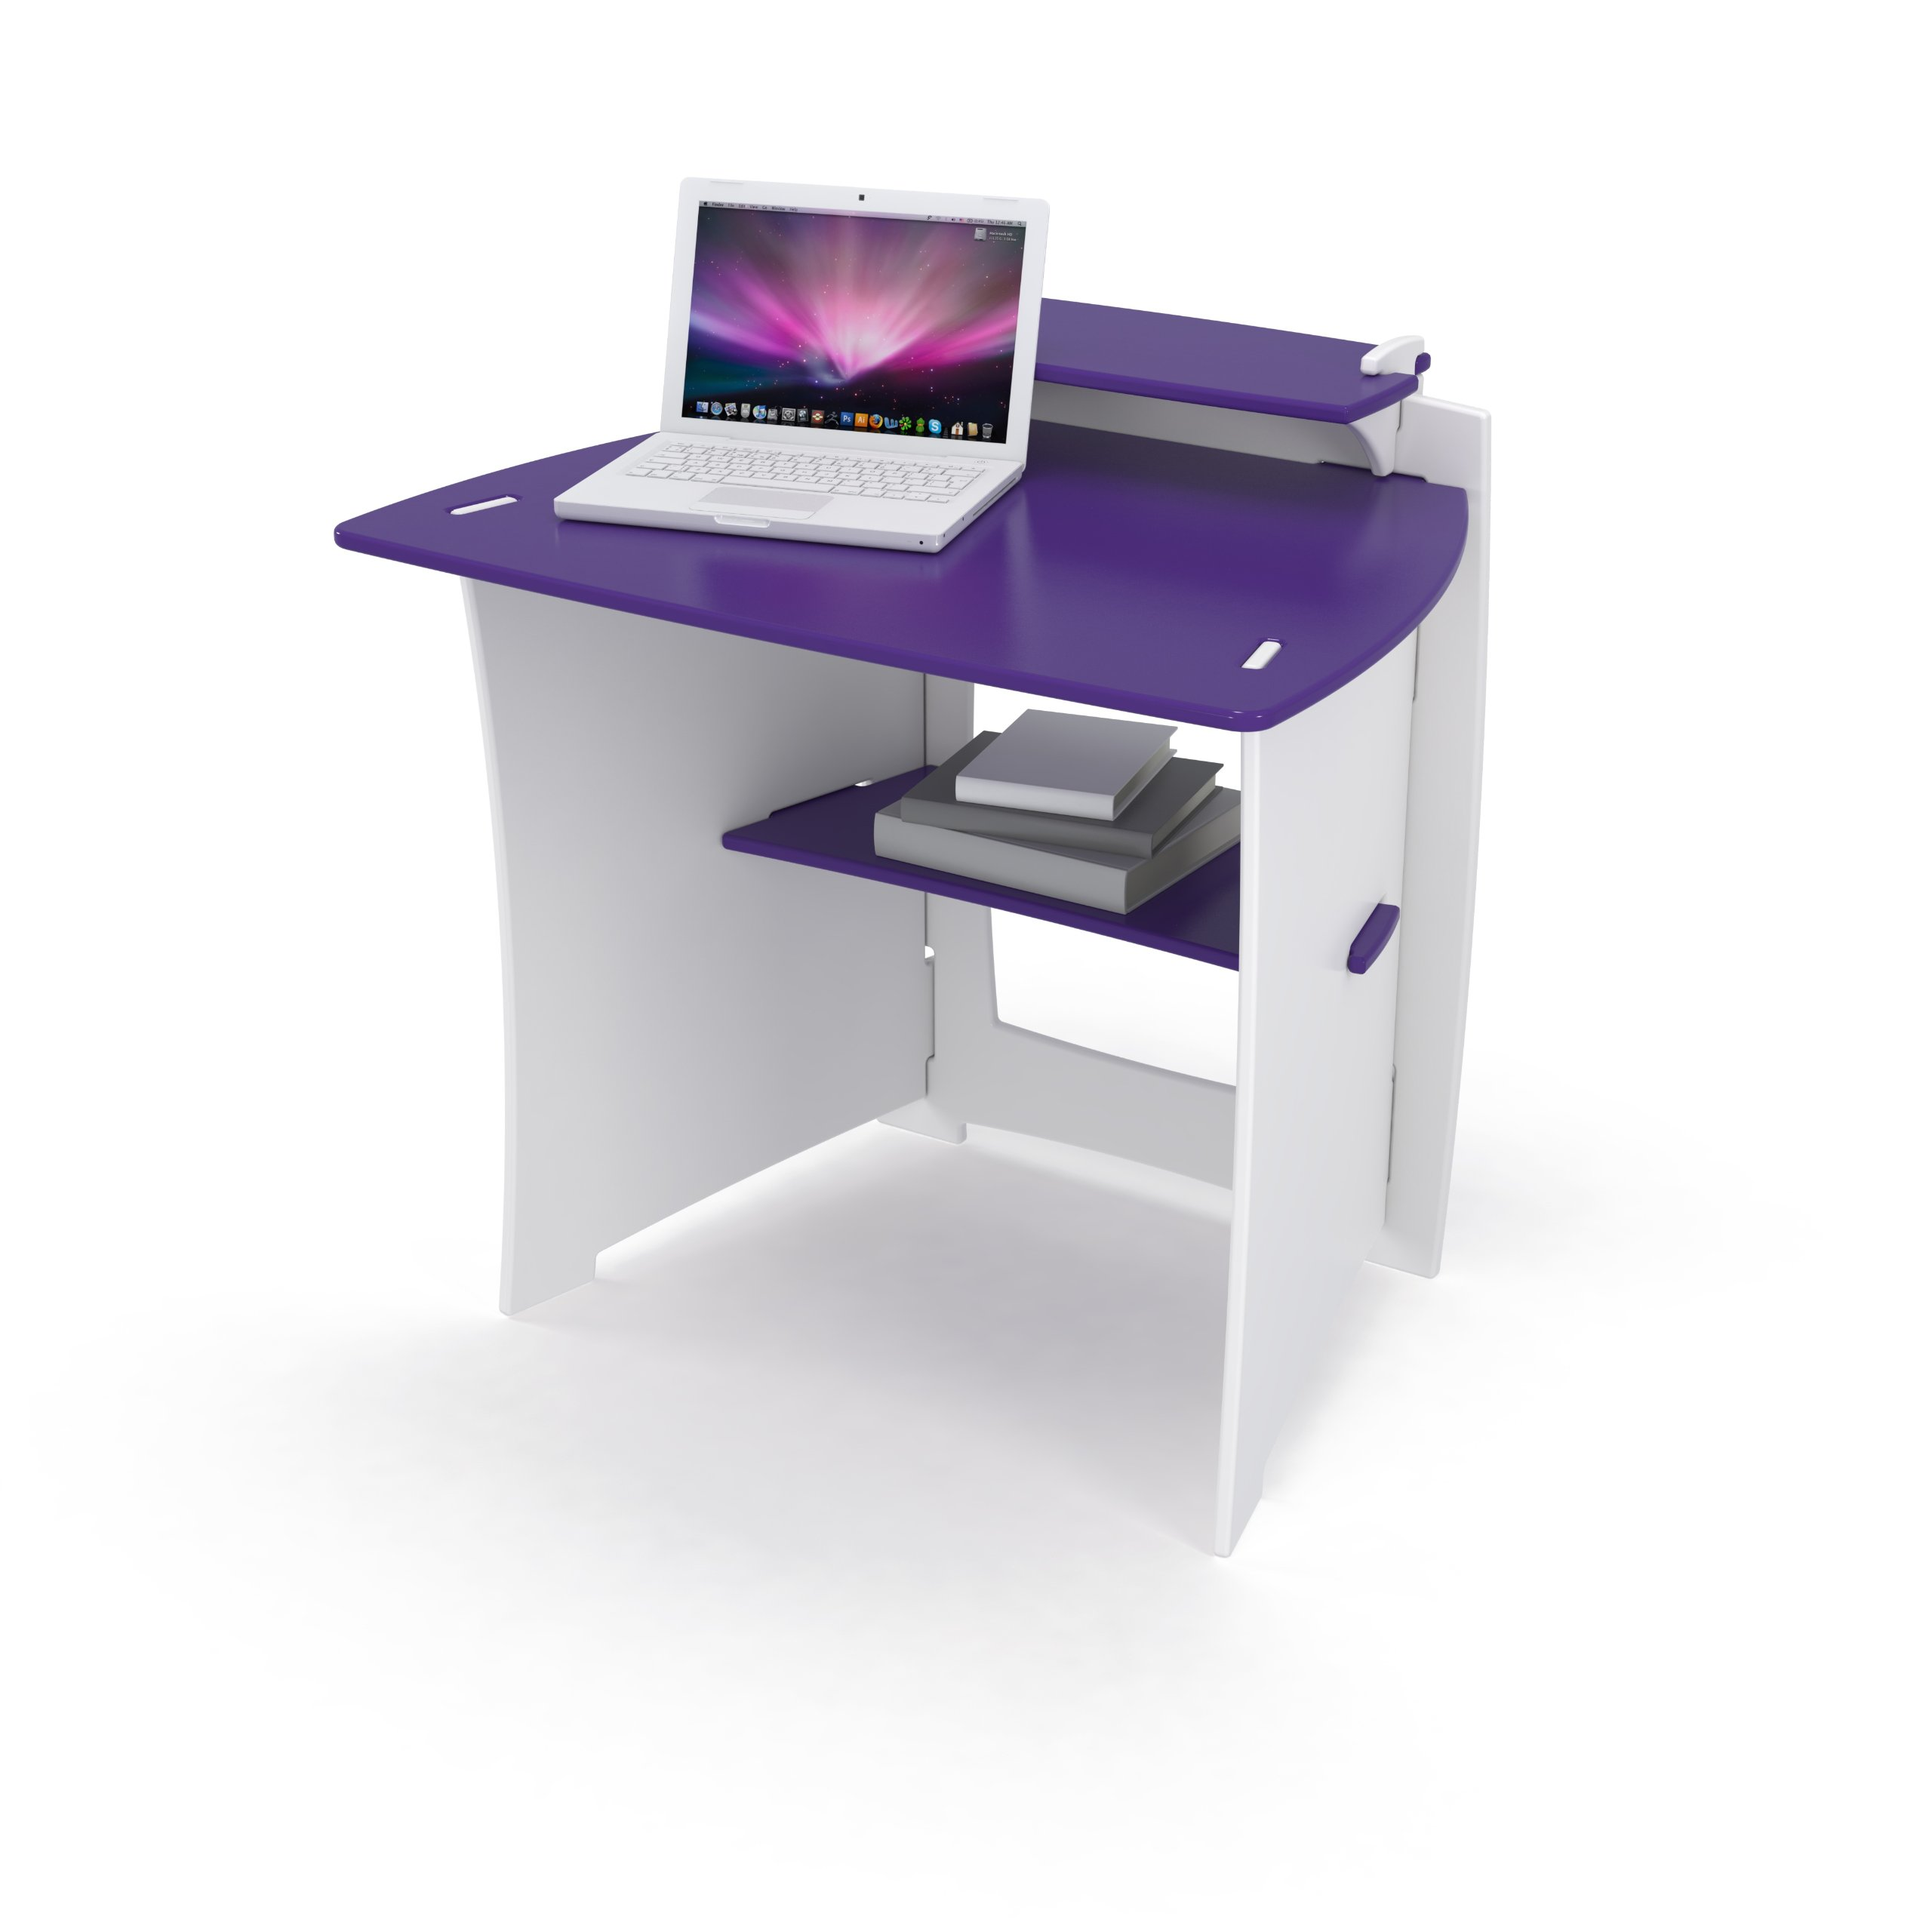 Legare 34-Inch Kids' Desk, Purple and White